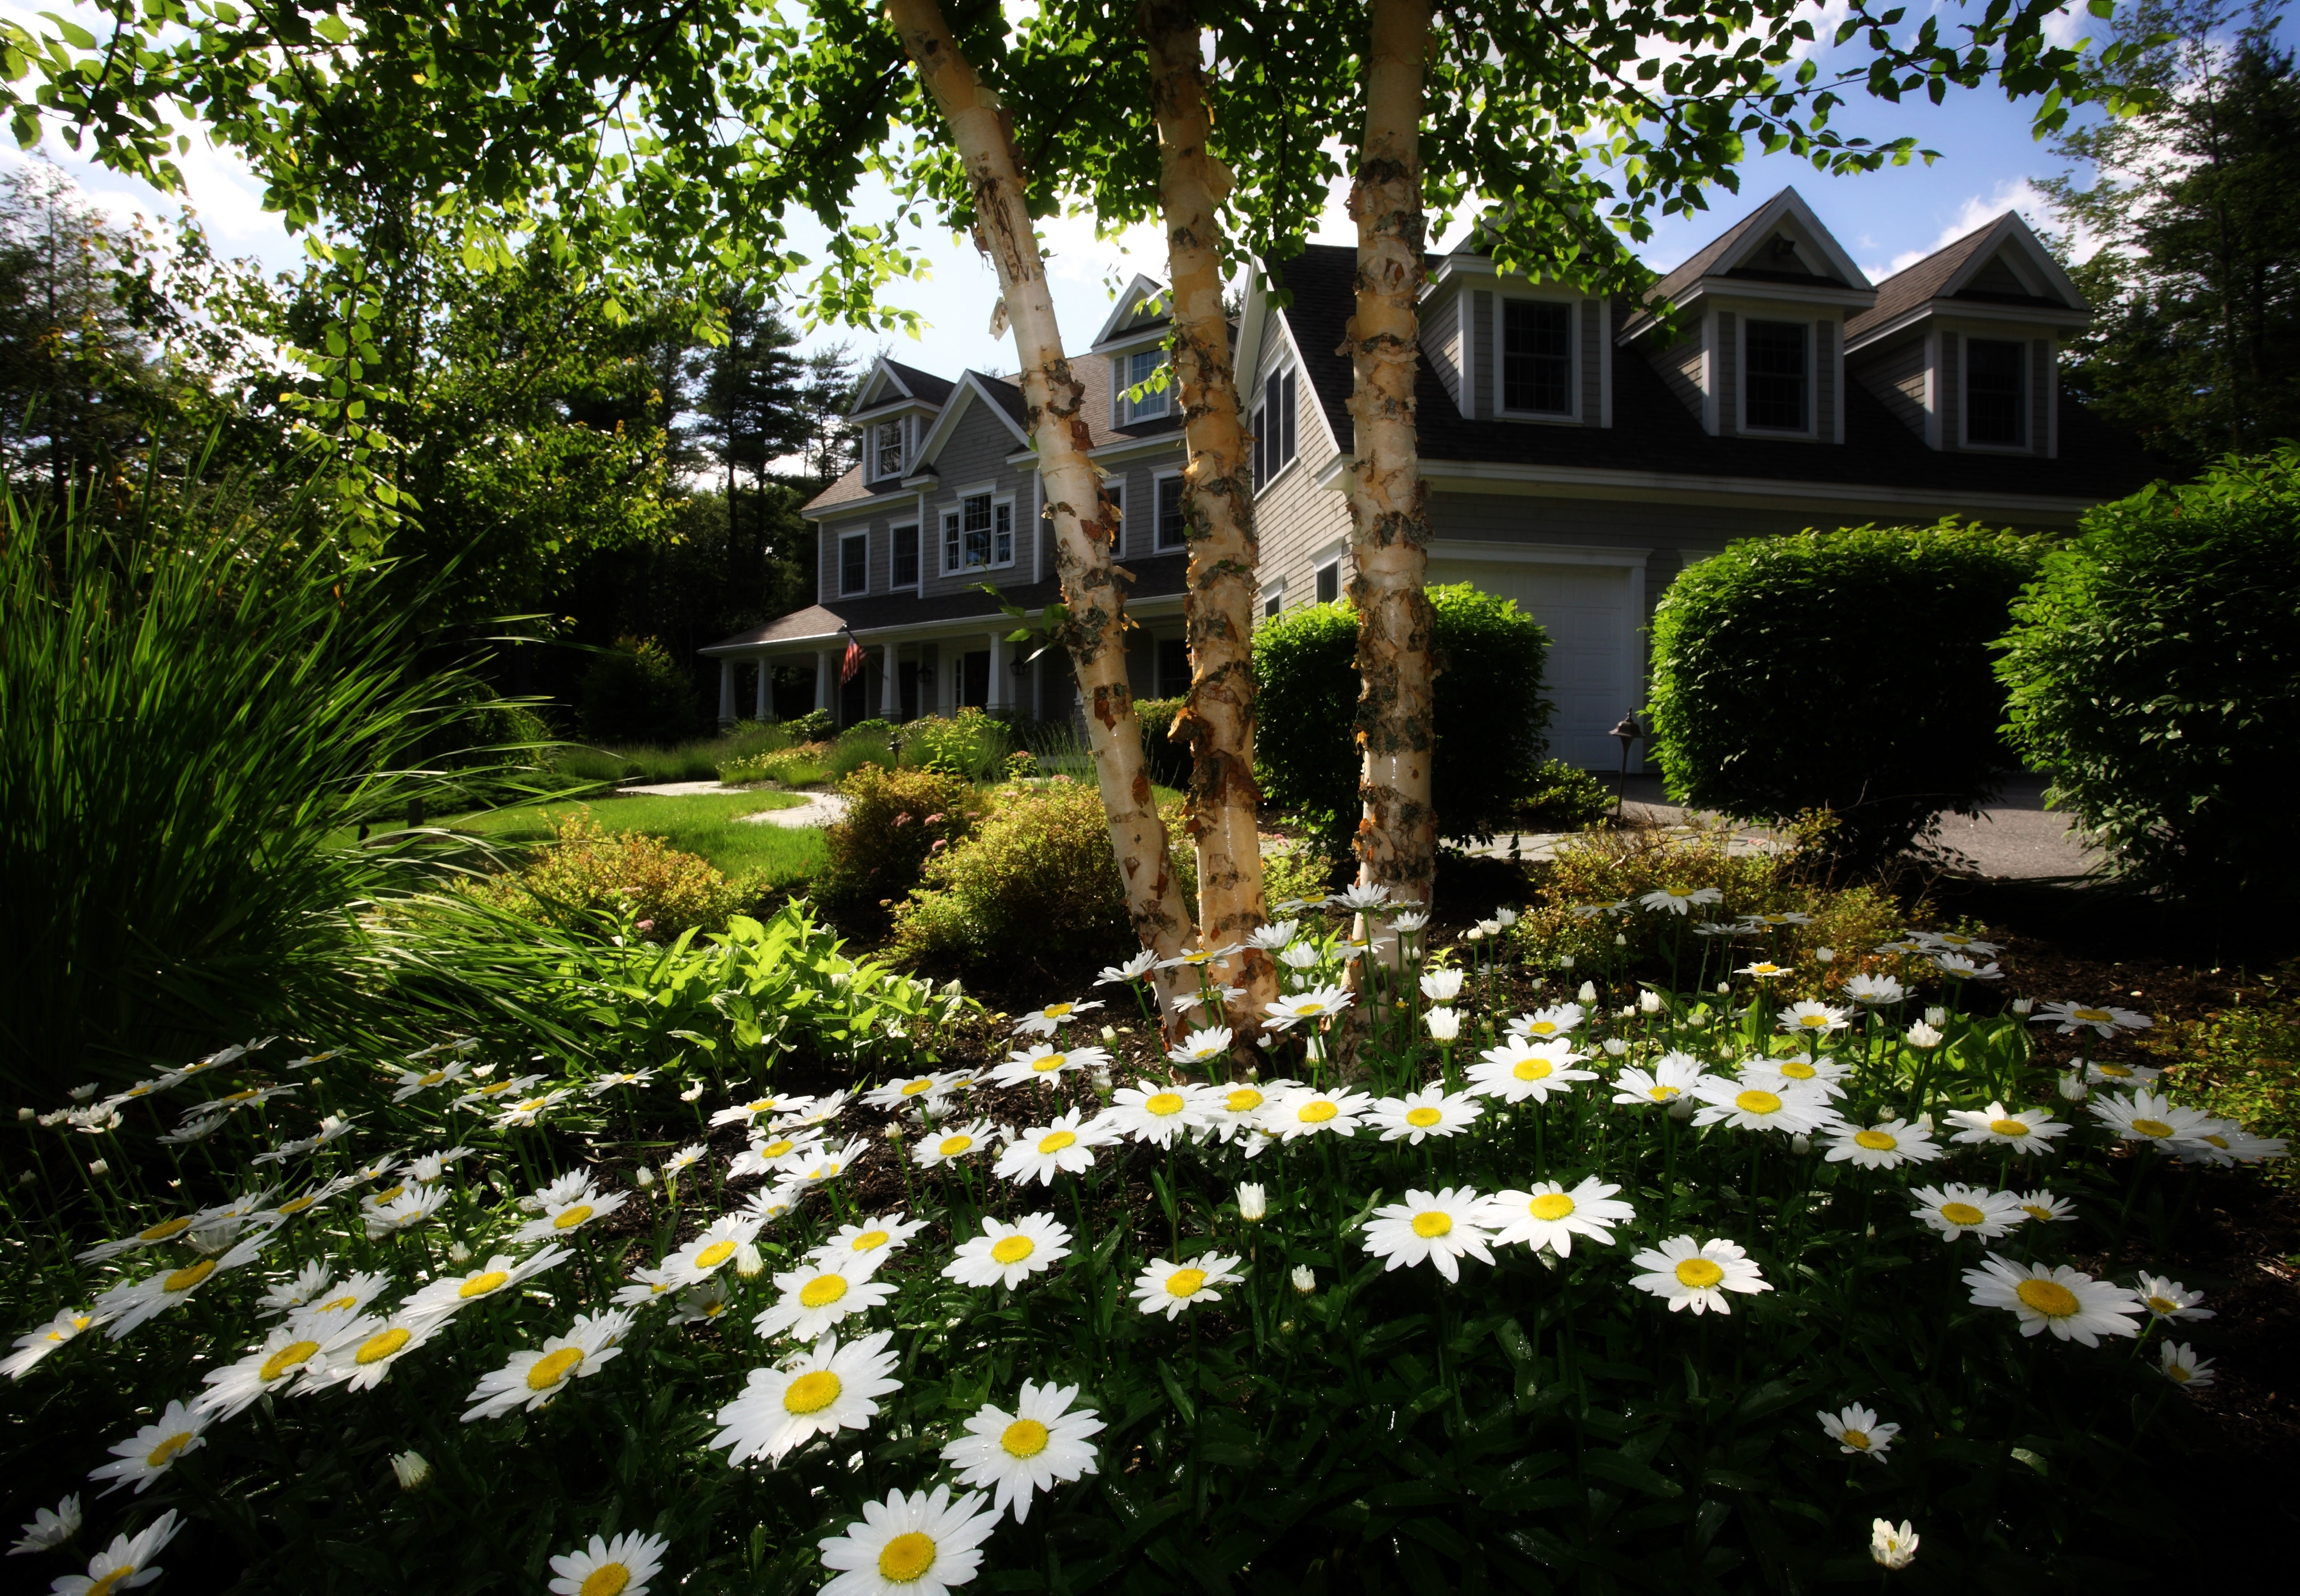 House with Flowers and Landscaping